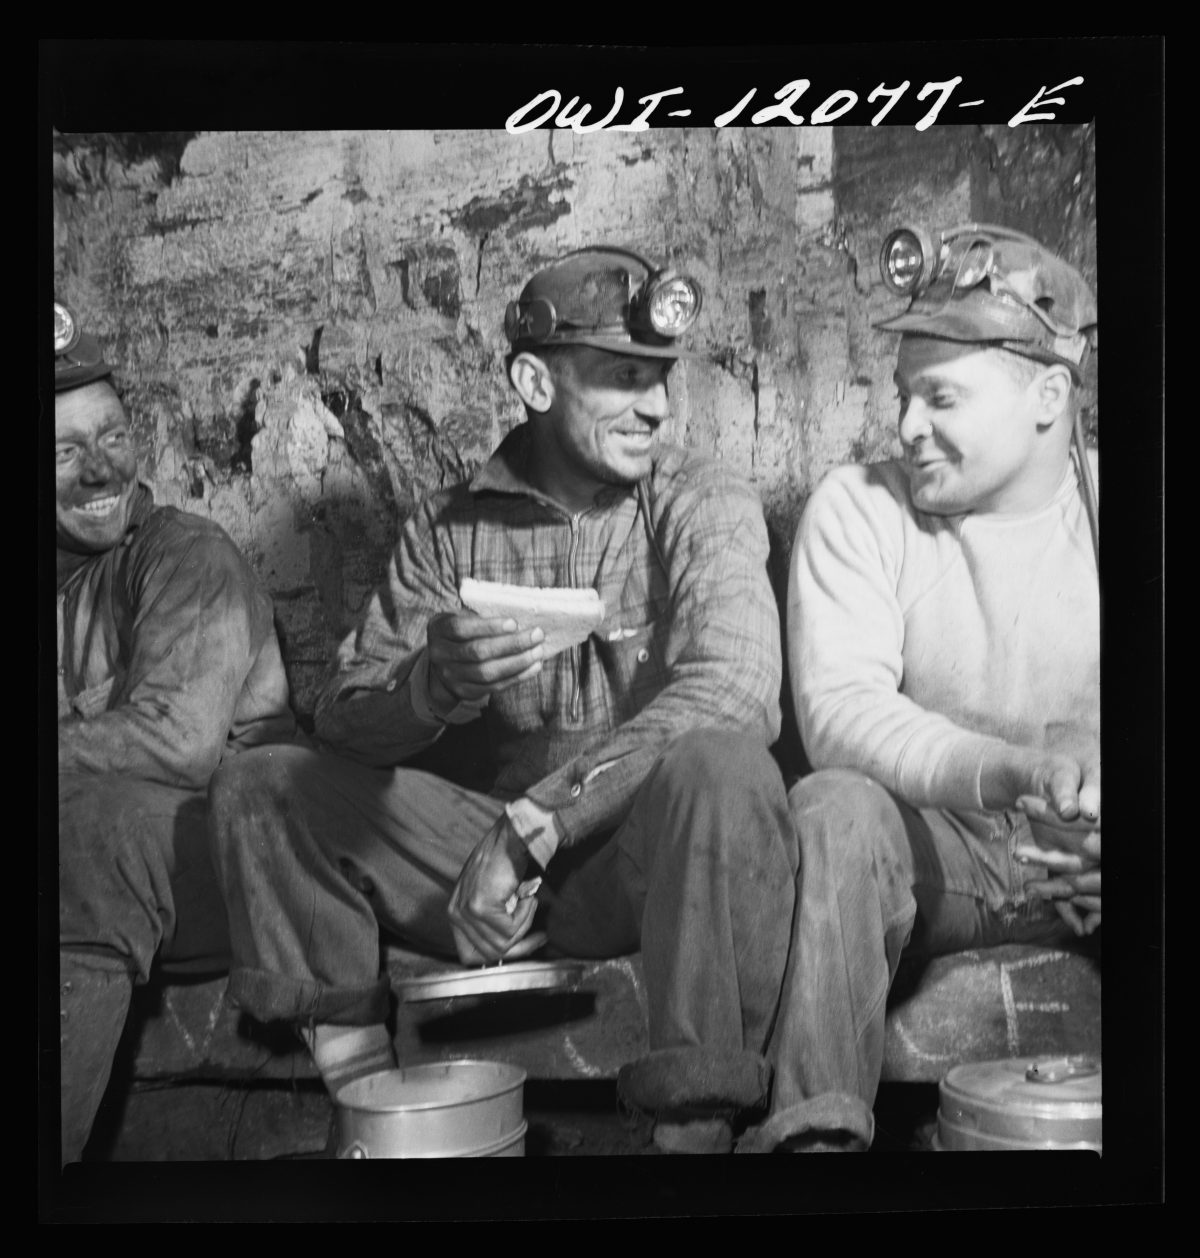 John Collier Montour No. 4 Mine of the Pittsburgh Coal Company in Washington County Pennsylvania